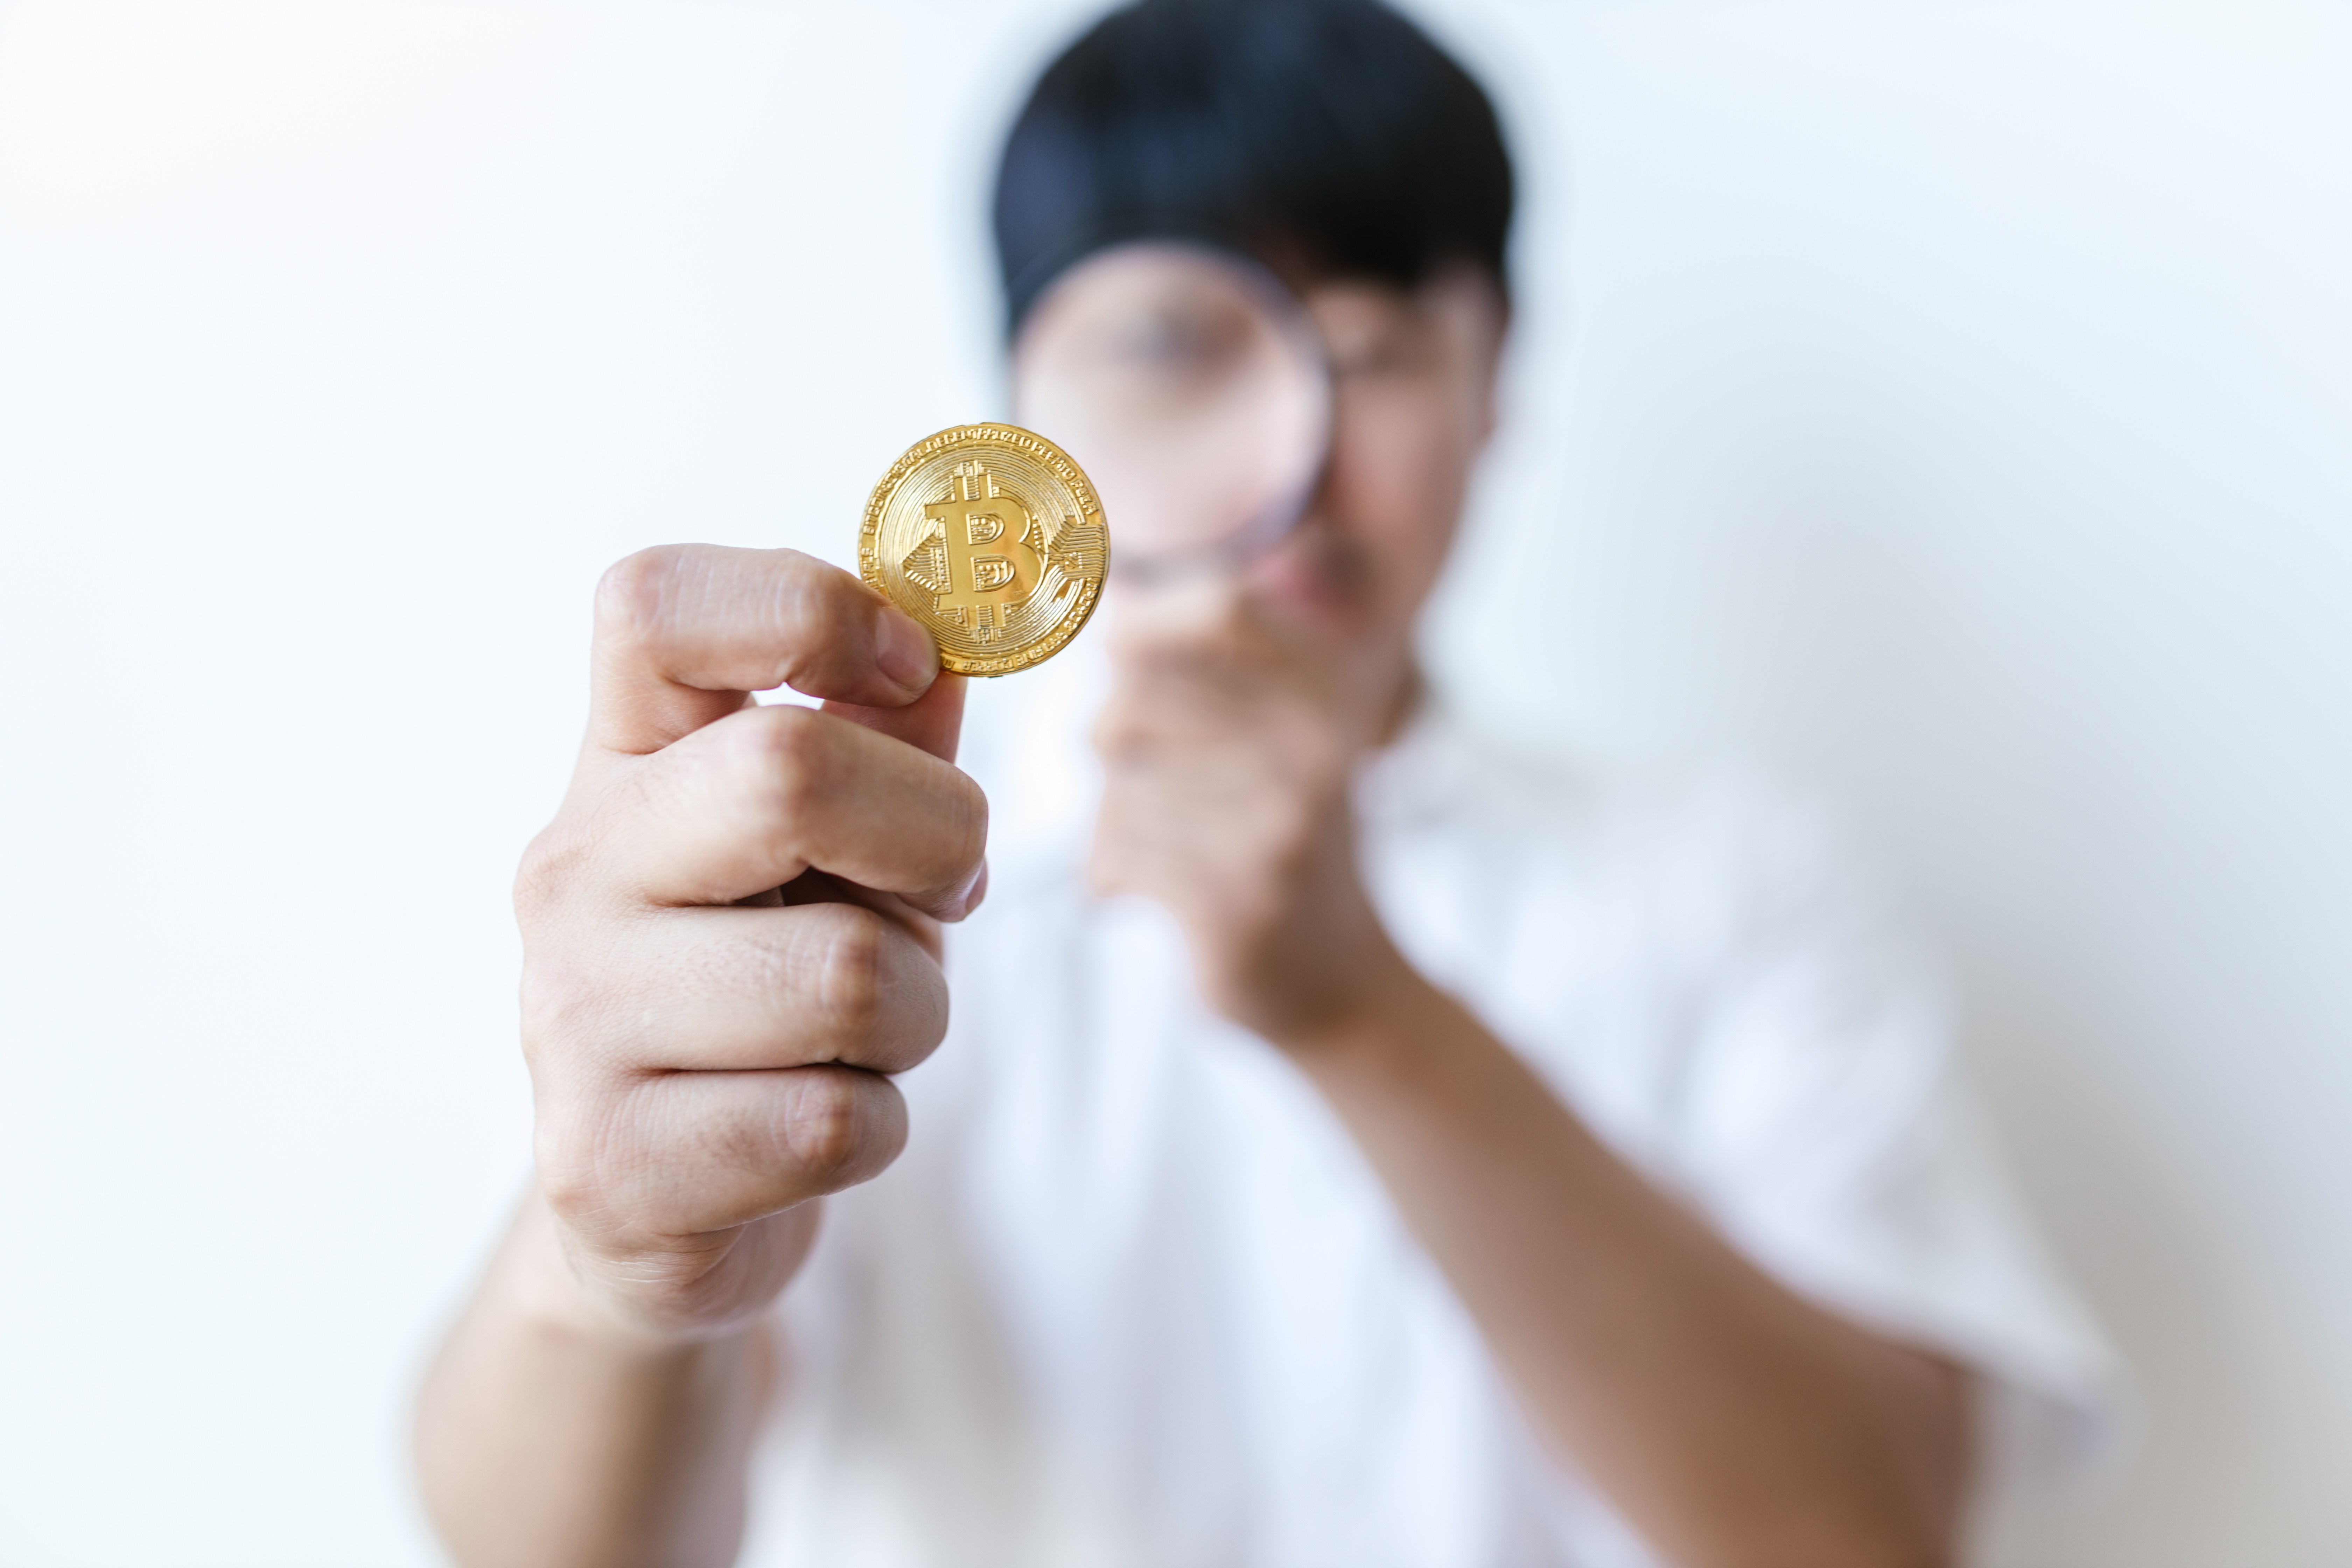 man in white shirt holding gold round coin